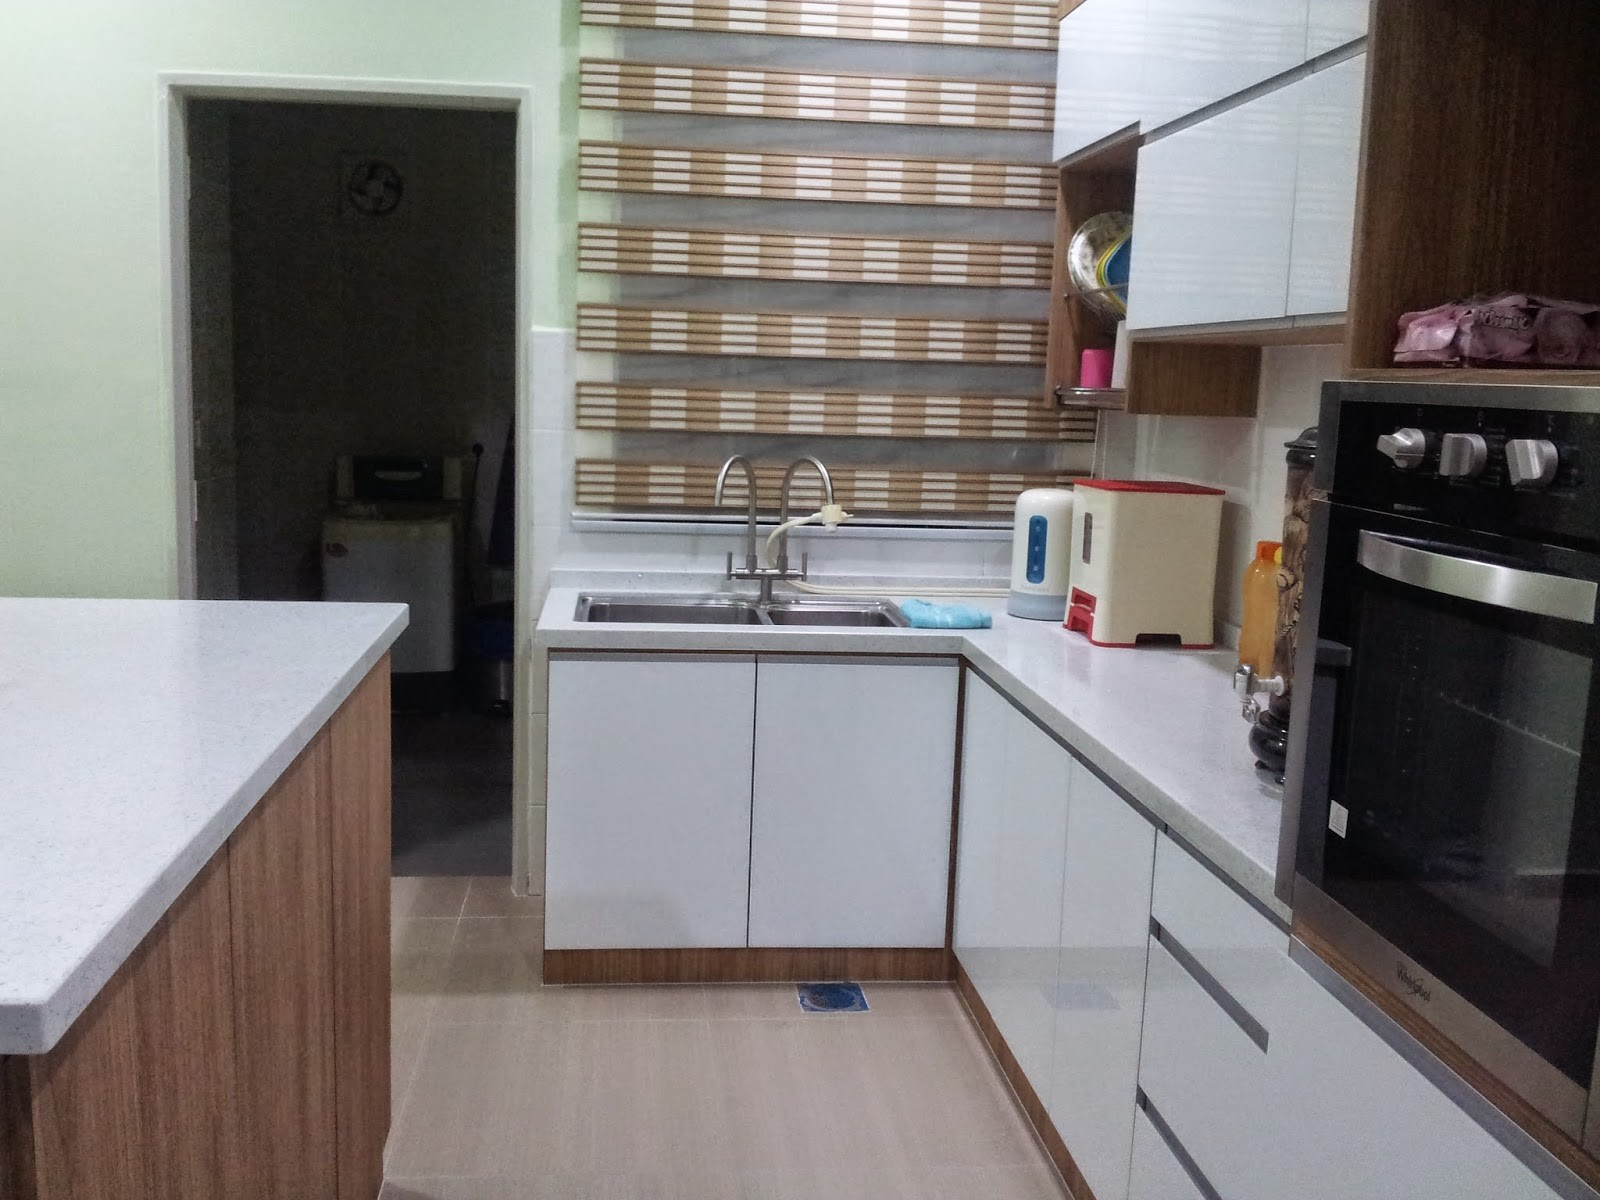 journey of my life kabi dapur buat kitchen set jakarta boat kitchen